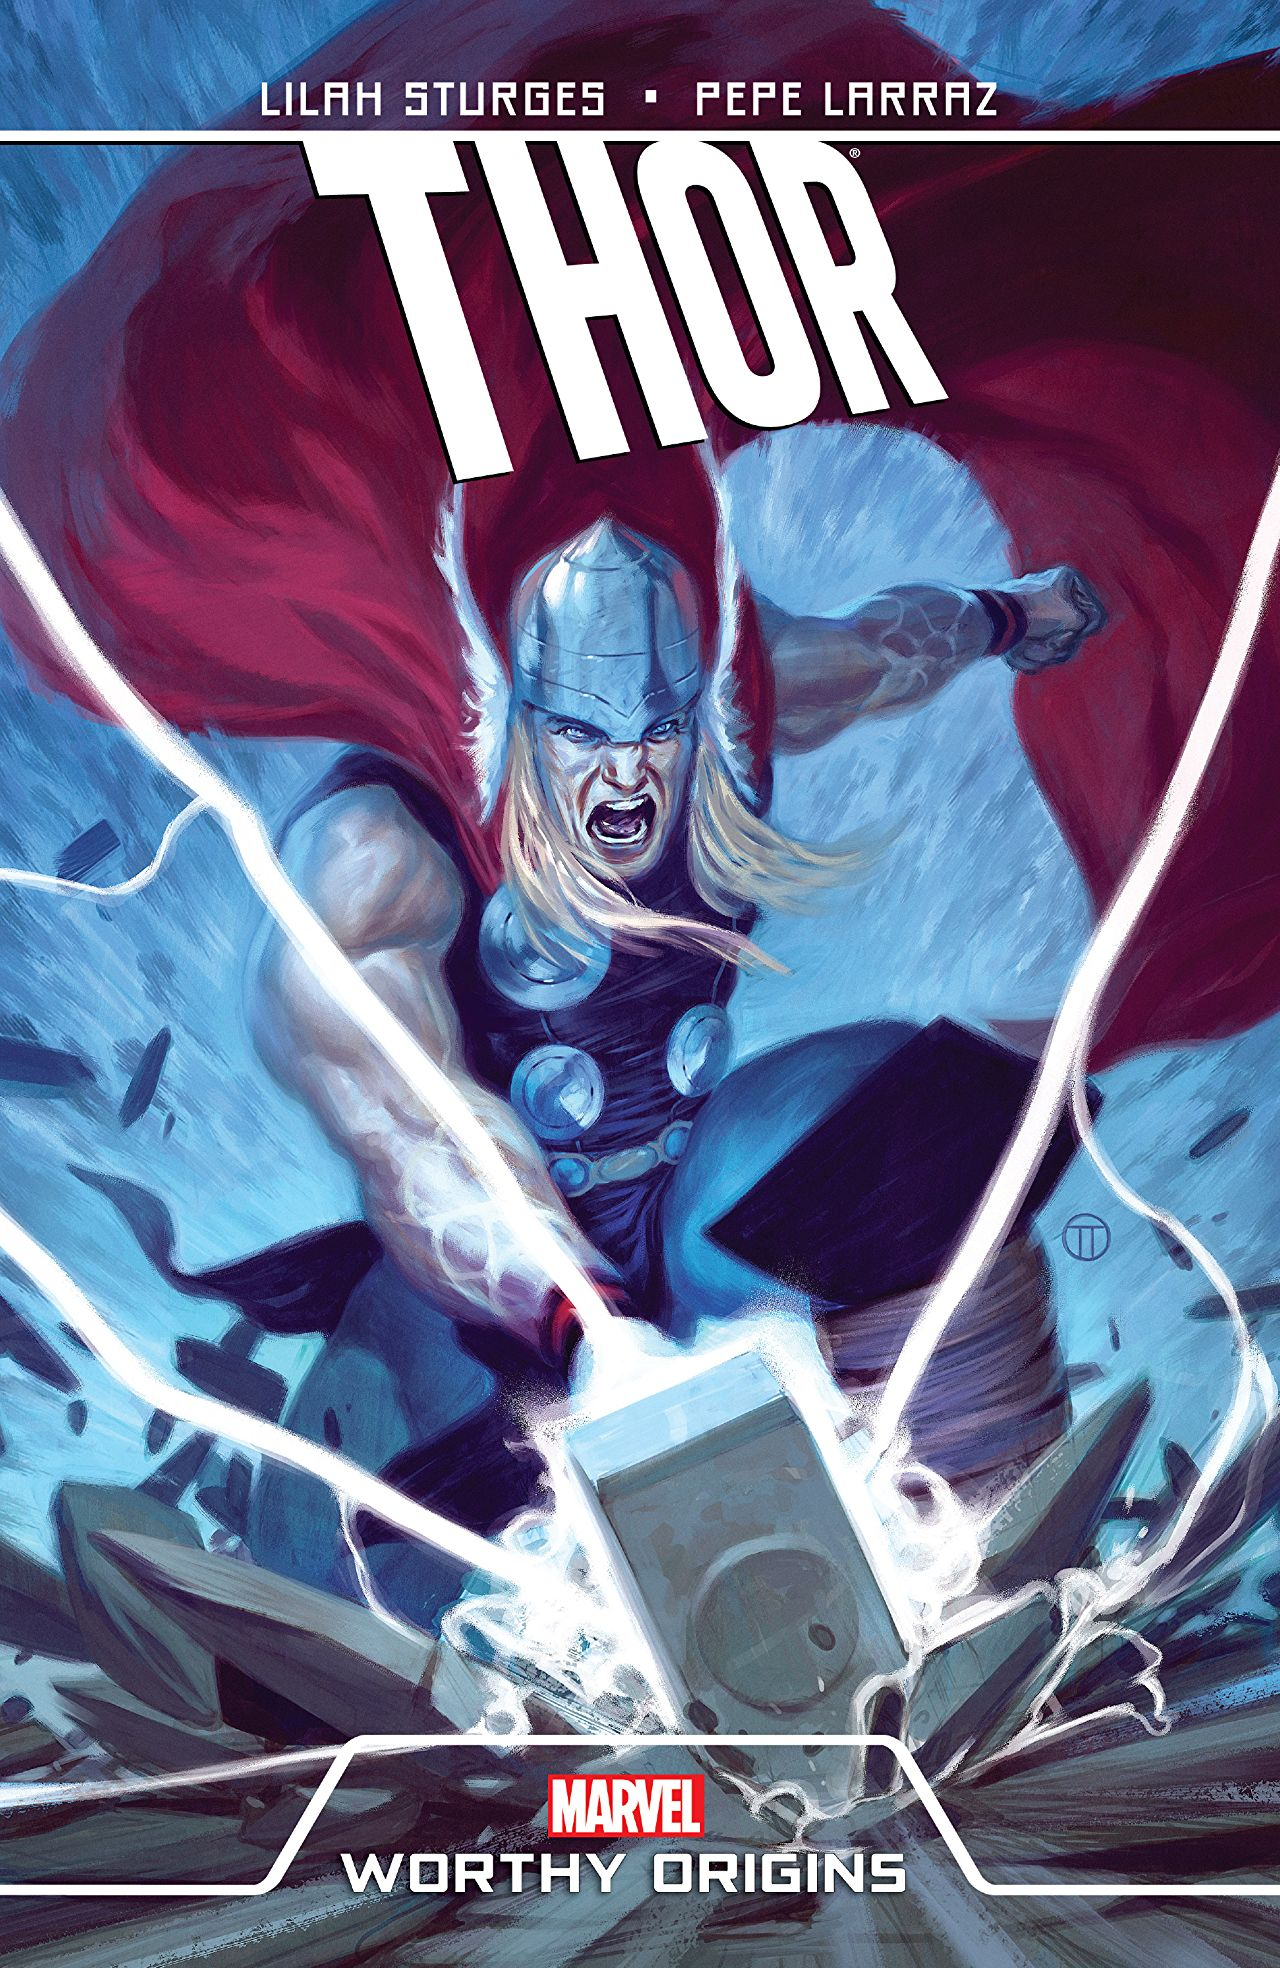 'Thor: Worthy Origins' review: bringing Thor's story to the 21st century